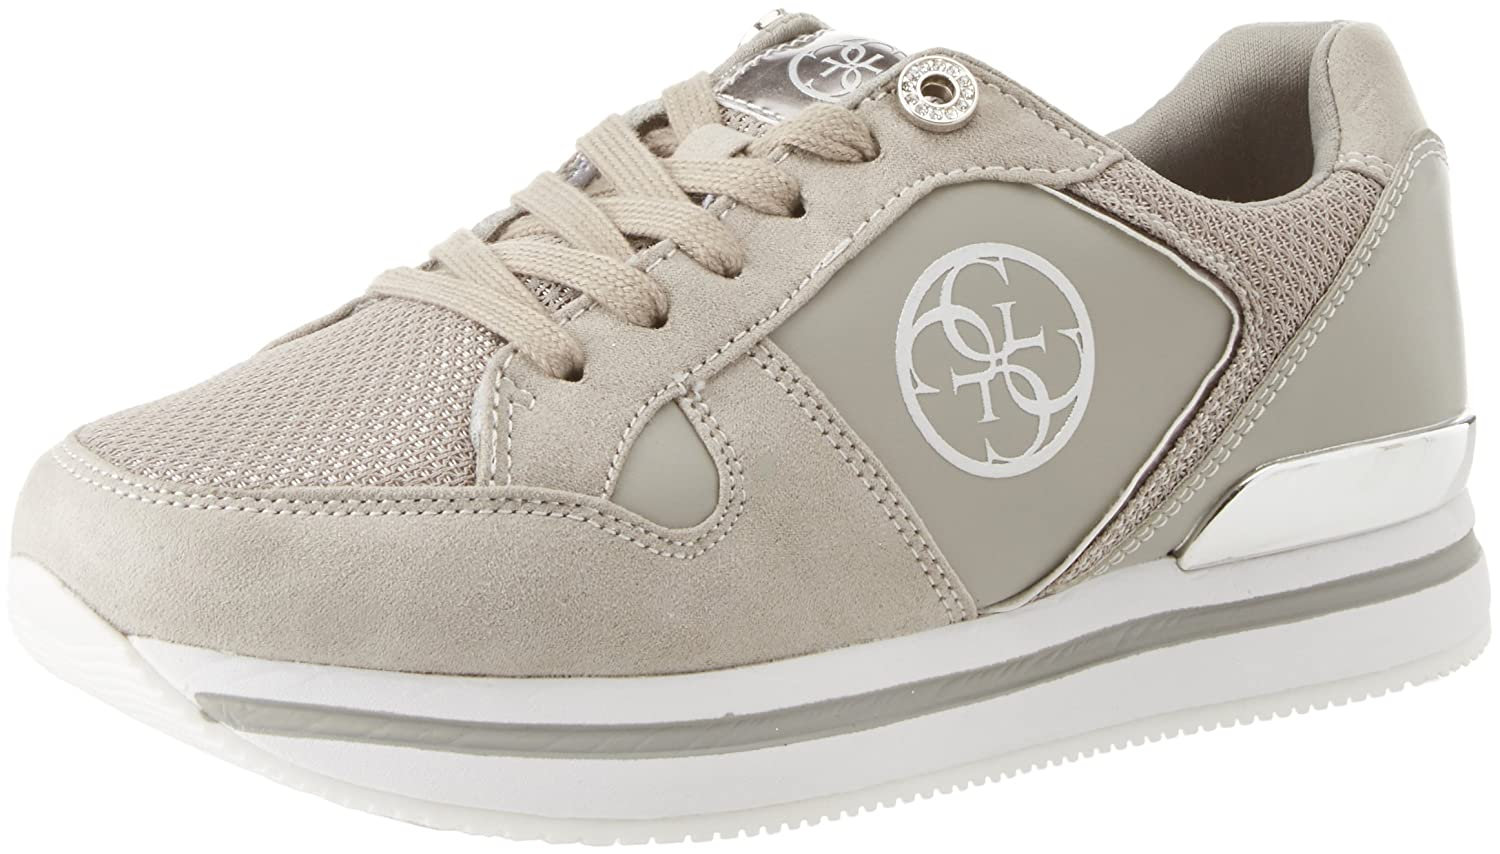 Guess Footwear Active Lady, Zapatillas para Mujer 36 EU|Grigio (Light Gray)